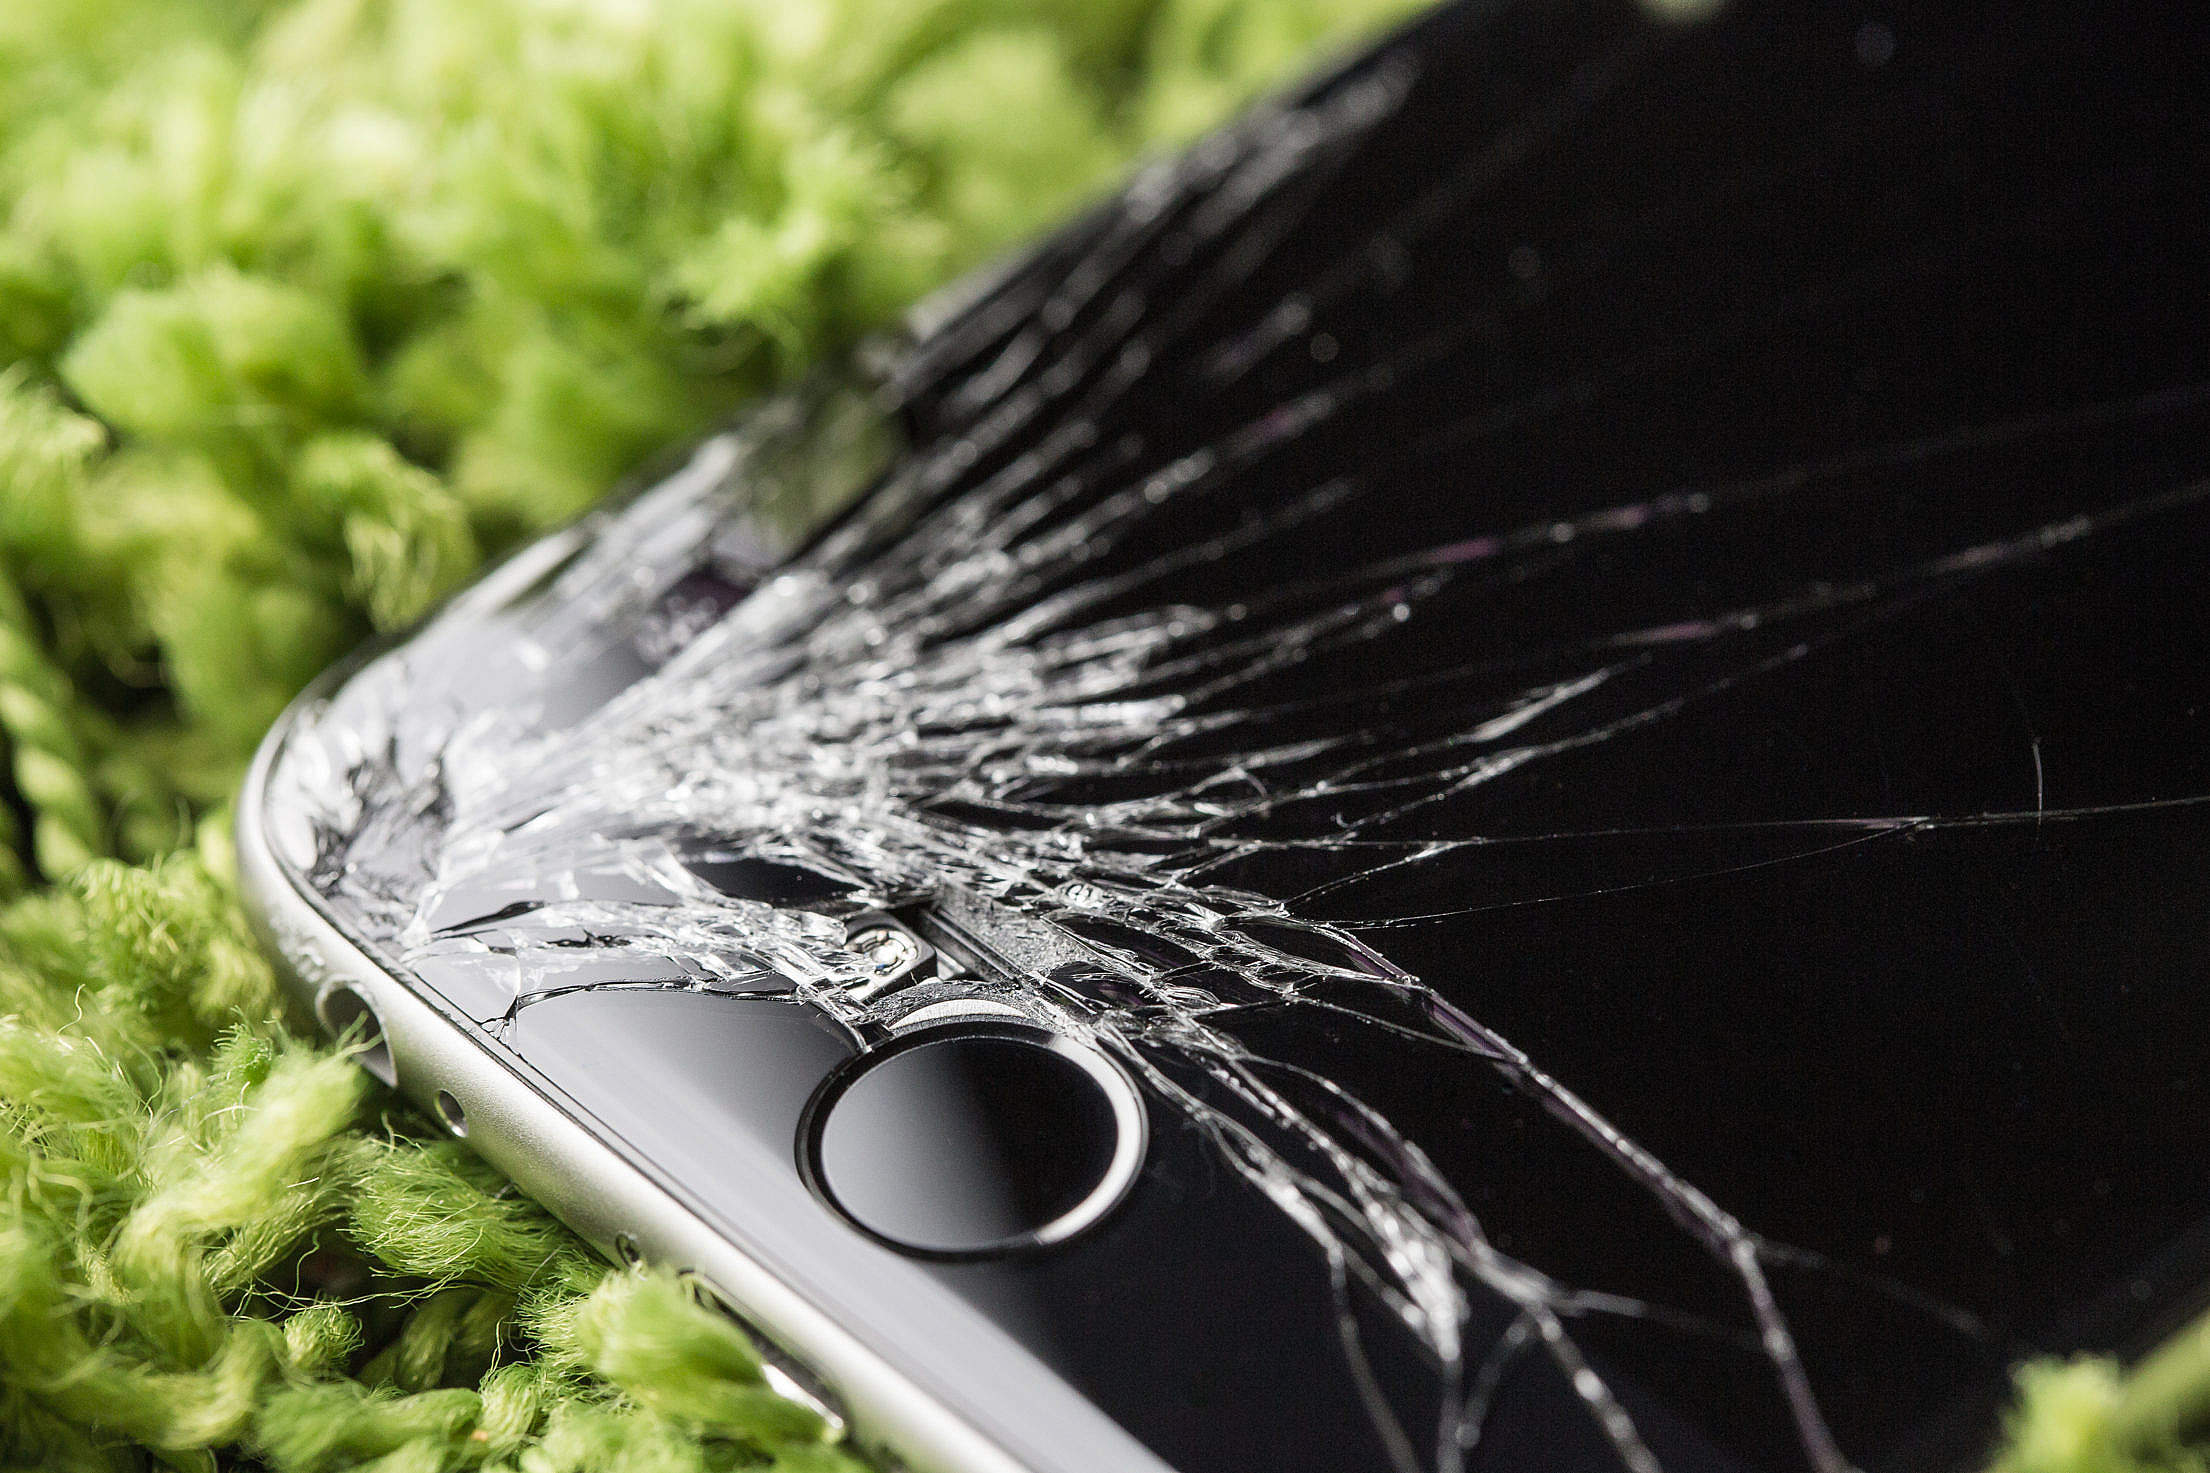 Download Dropped iPhone 6 with Cracked Screen Close Up Free Stock Photo